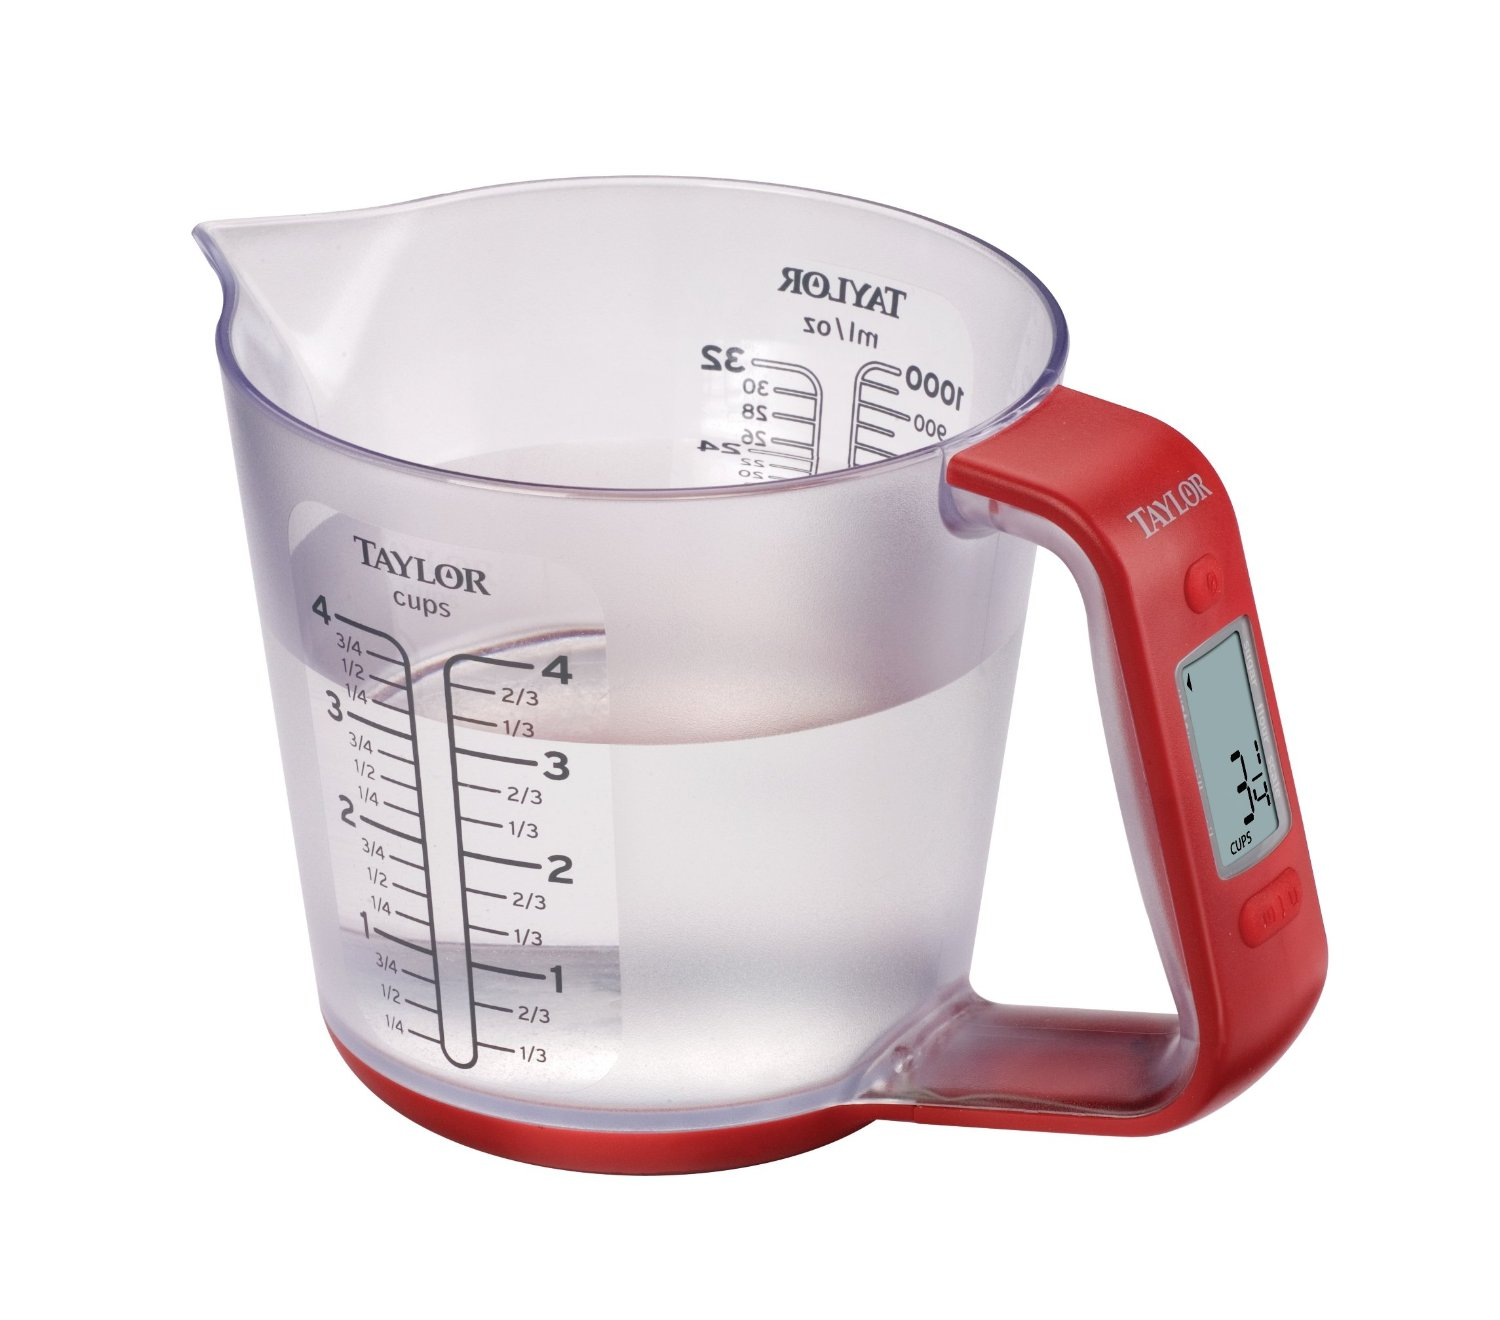 Taylor 3890 Digital Measuring Cup and Scale | Xcite Alghanim ...